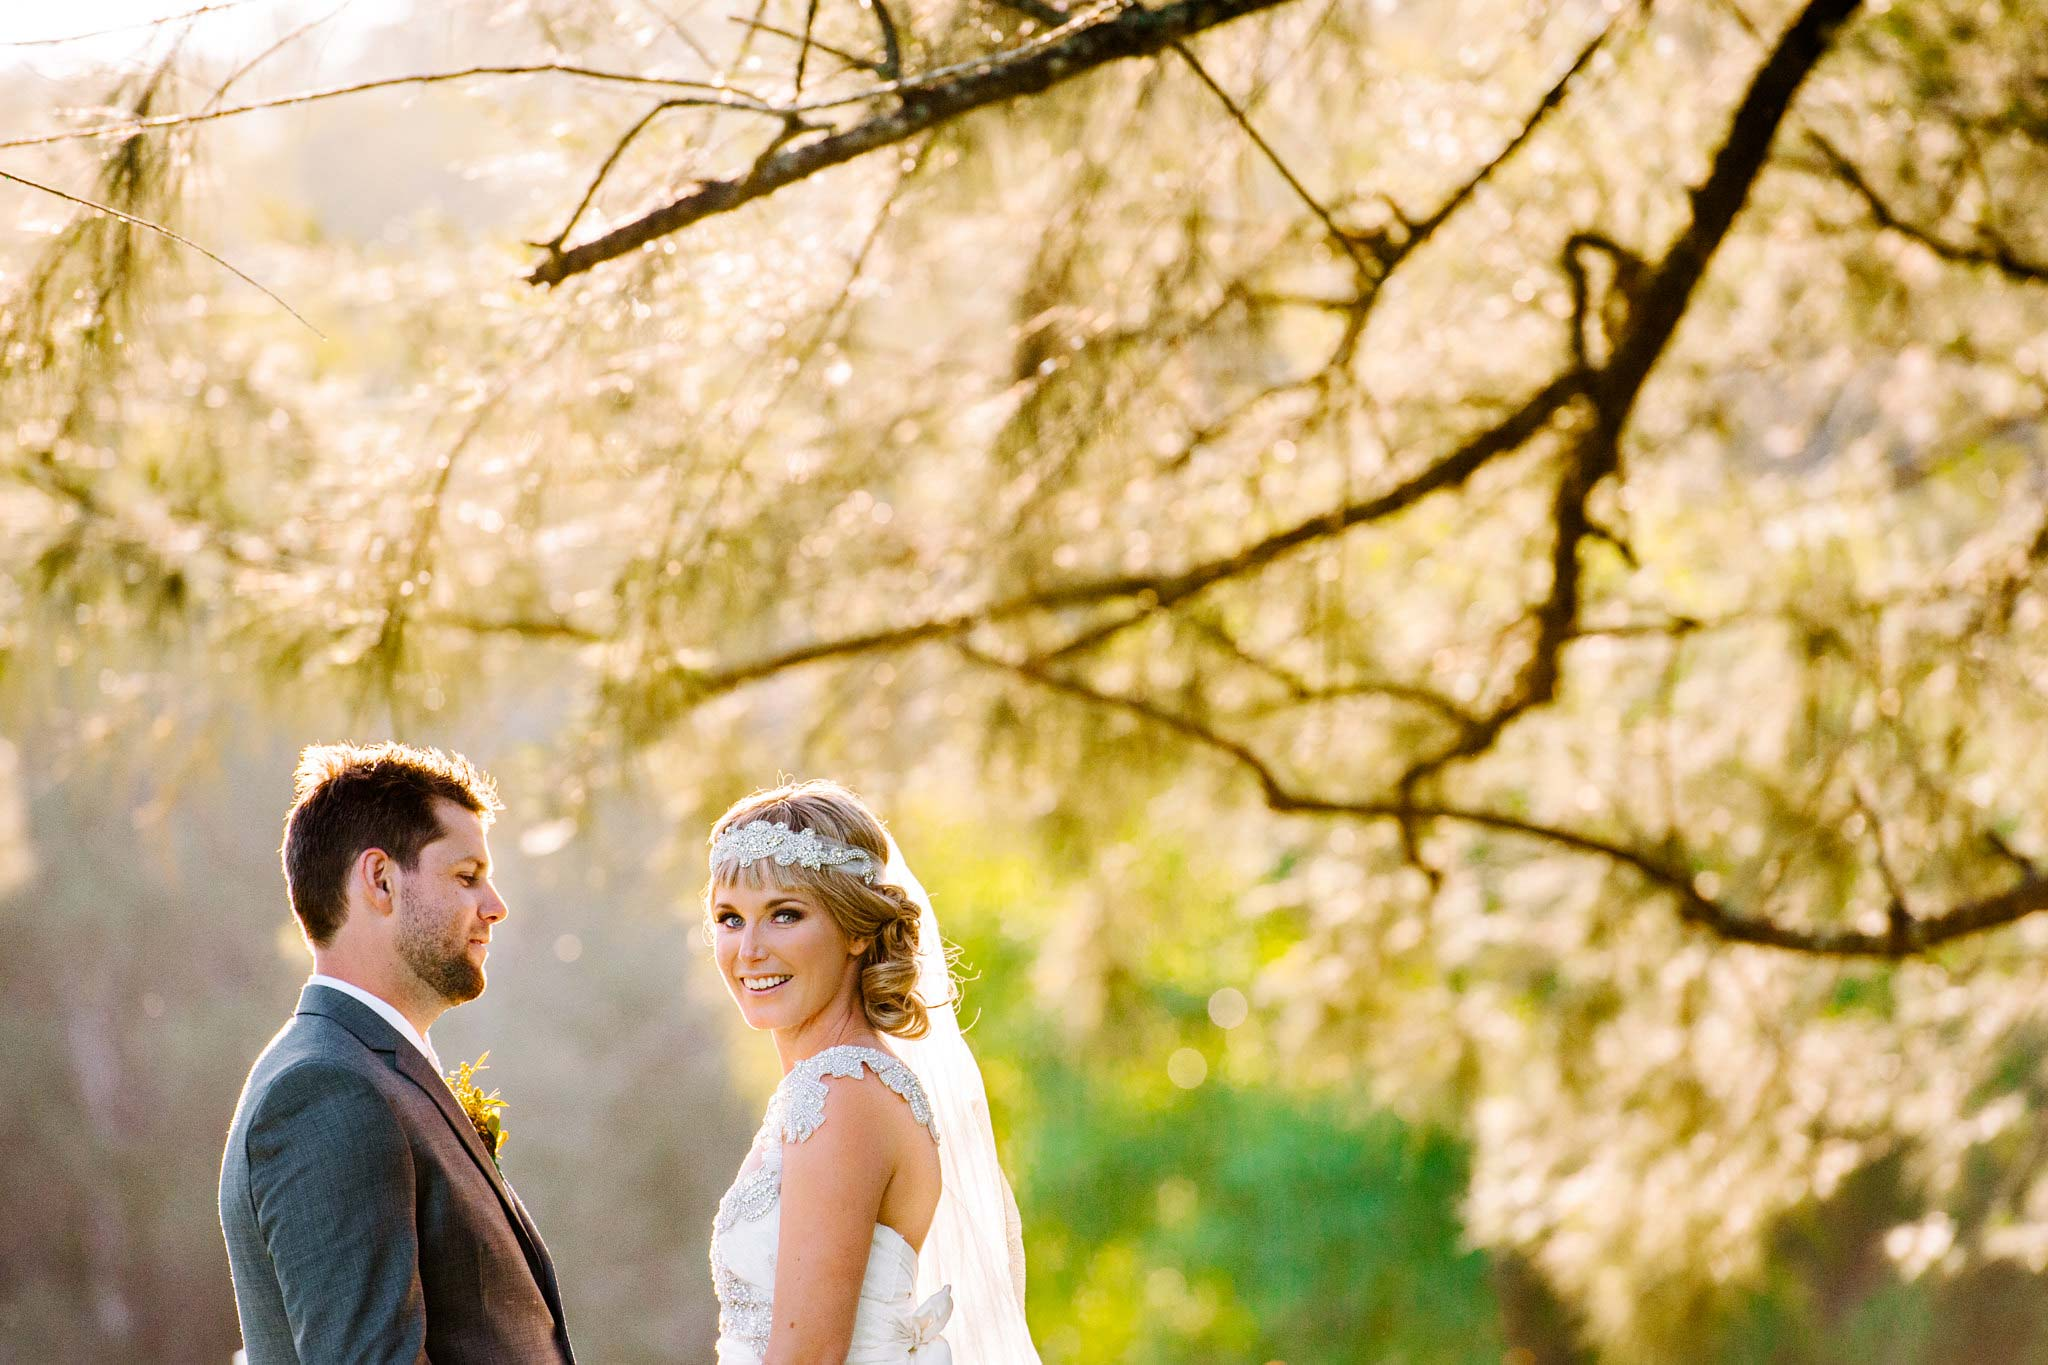 Wedding-Wollombi-Barnstay-bridal-groom.jpg